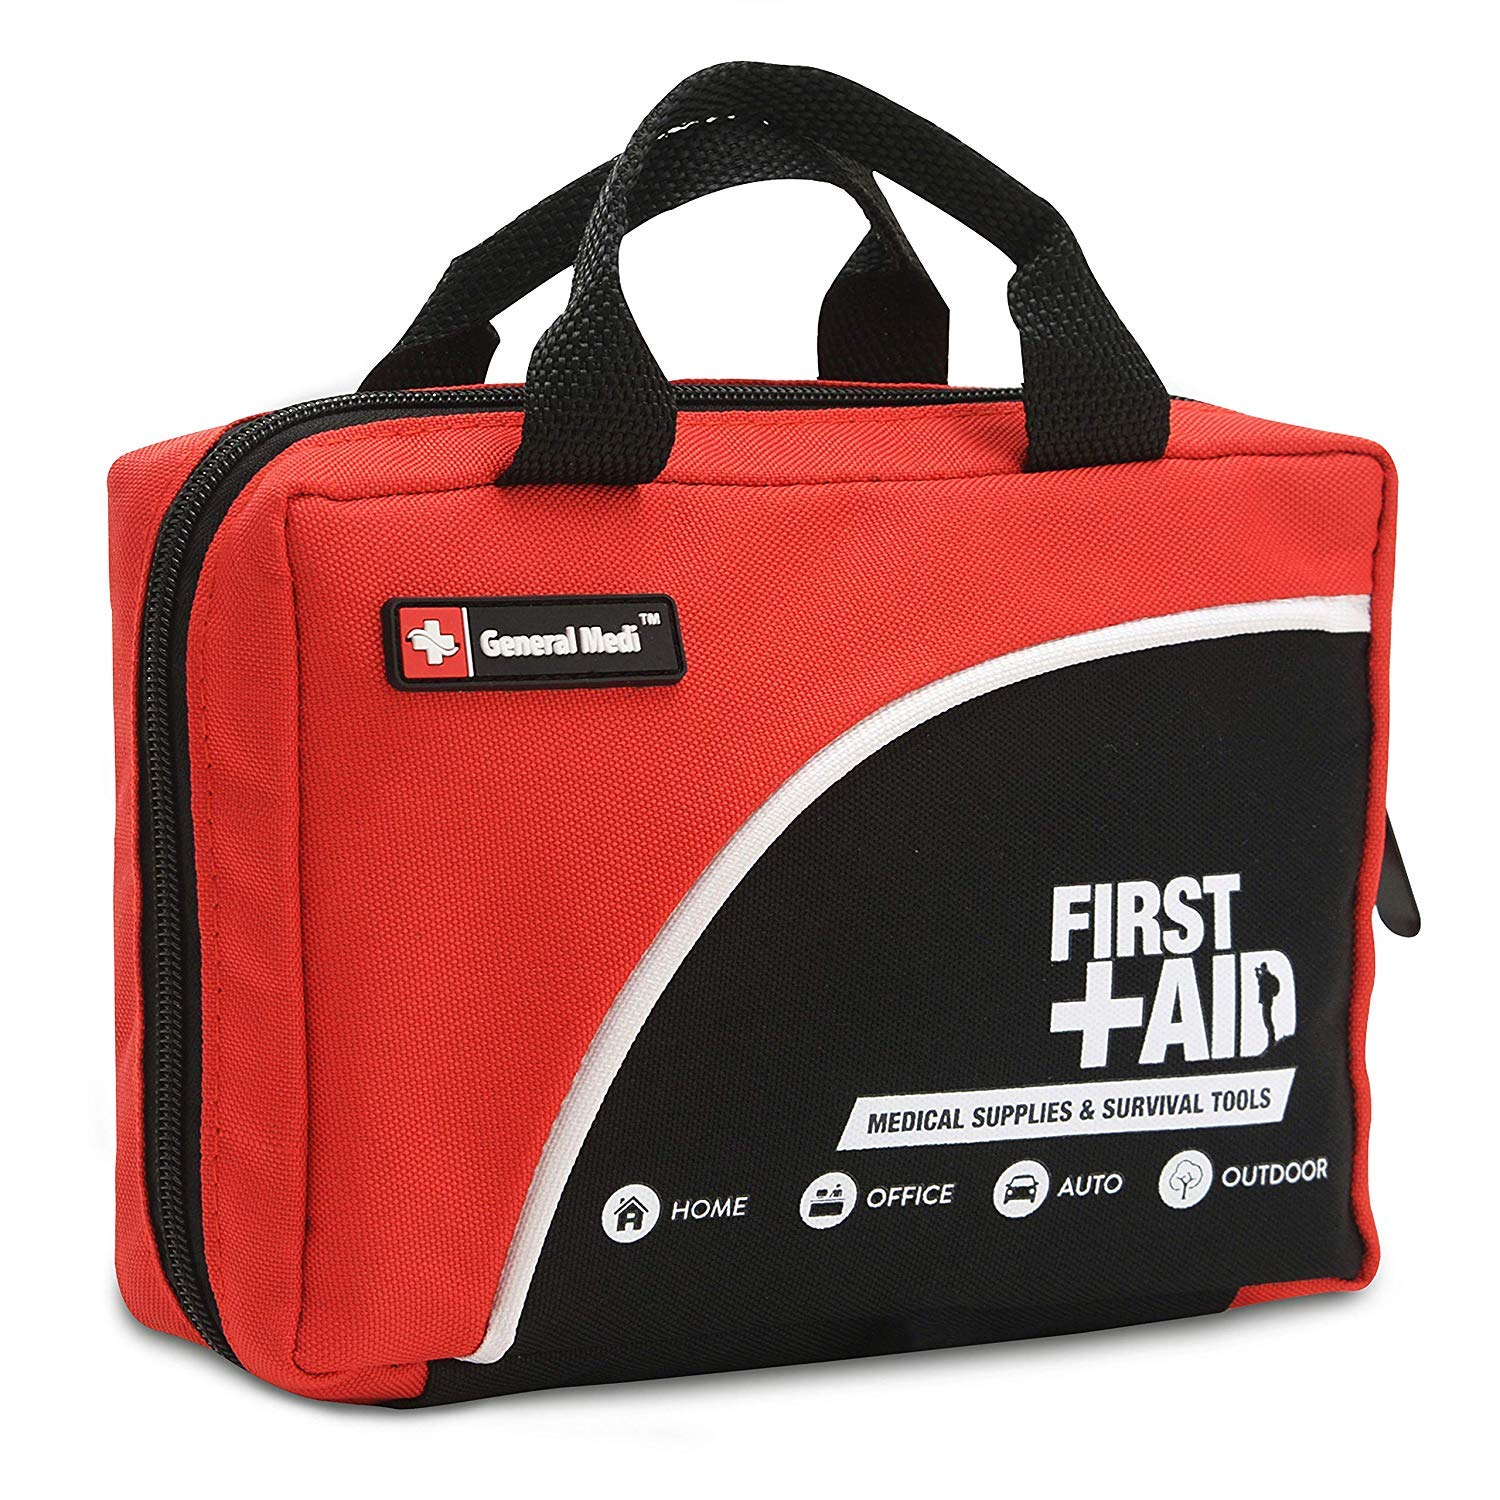 First Aid Kit -160 Pieces Compact and Lightweight - Including Cold (Ice) Pack, Emergency Blanket,CPR Mask,Moleskin Pad,Perfect for Travel, Home, Office, Car, Camping, Workplace by General Medi